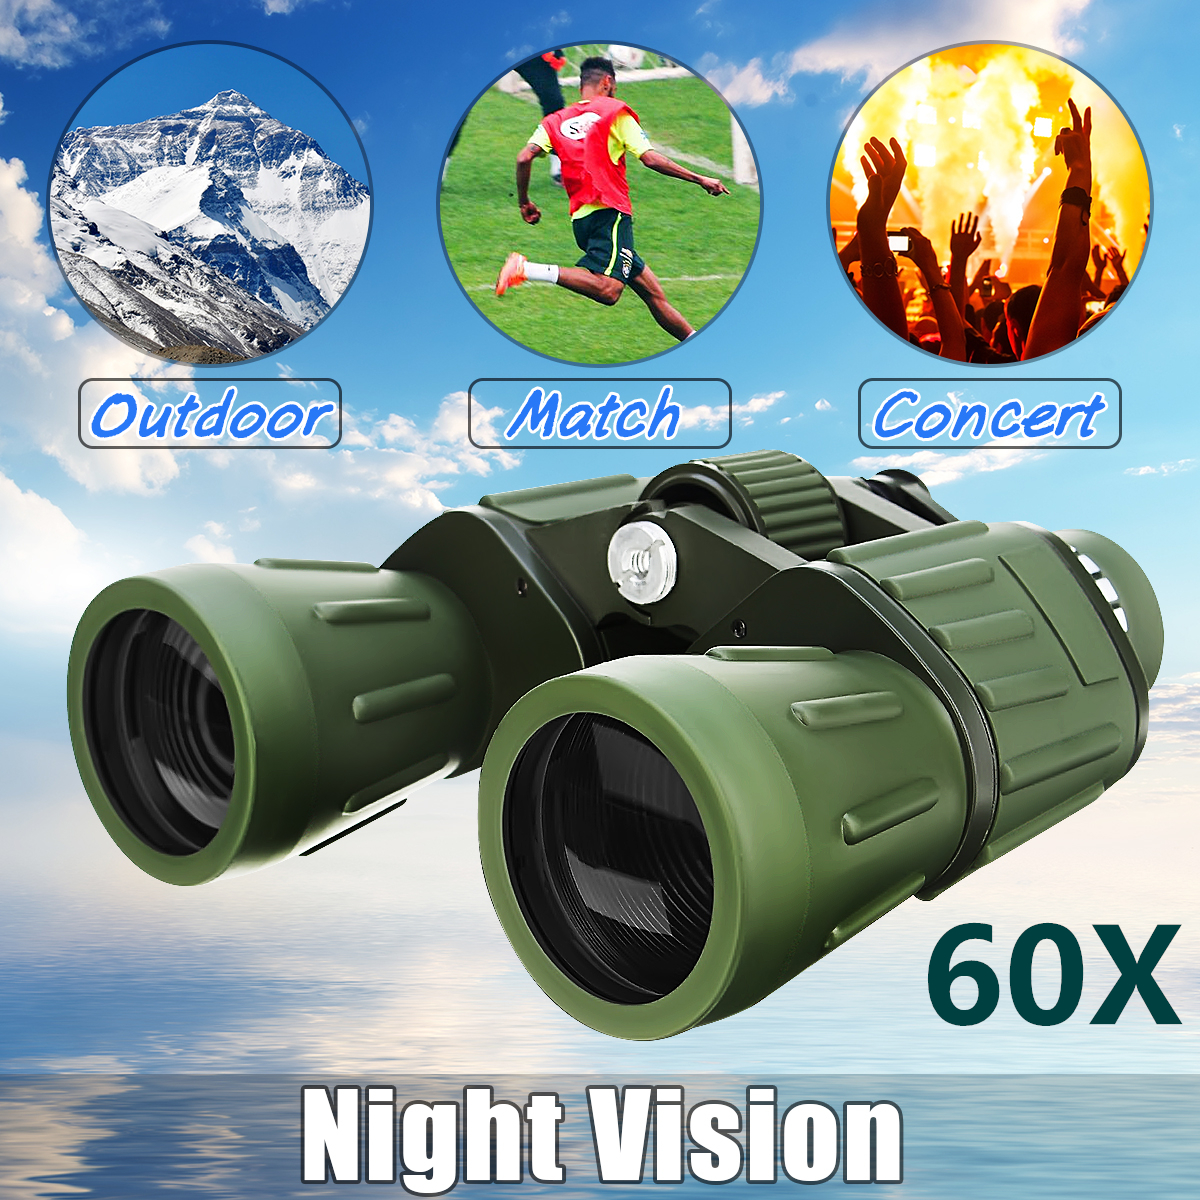 60X Zoom Adjustable High Power HD Binoculars Night Vision Anti UV Military Army Outdoor Hunting Camping Travel Match... by